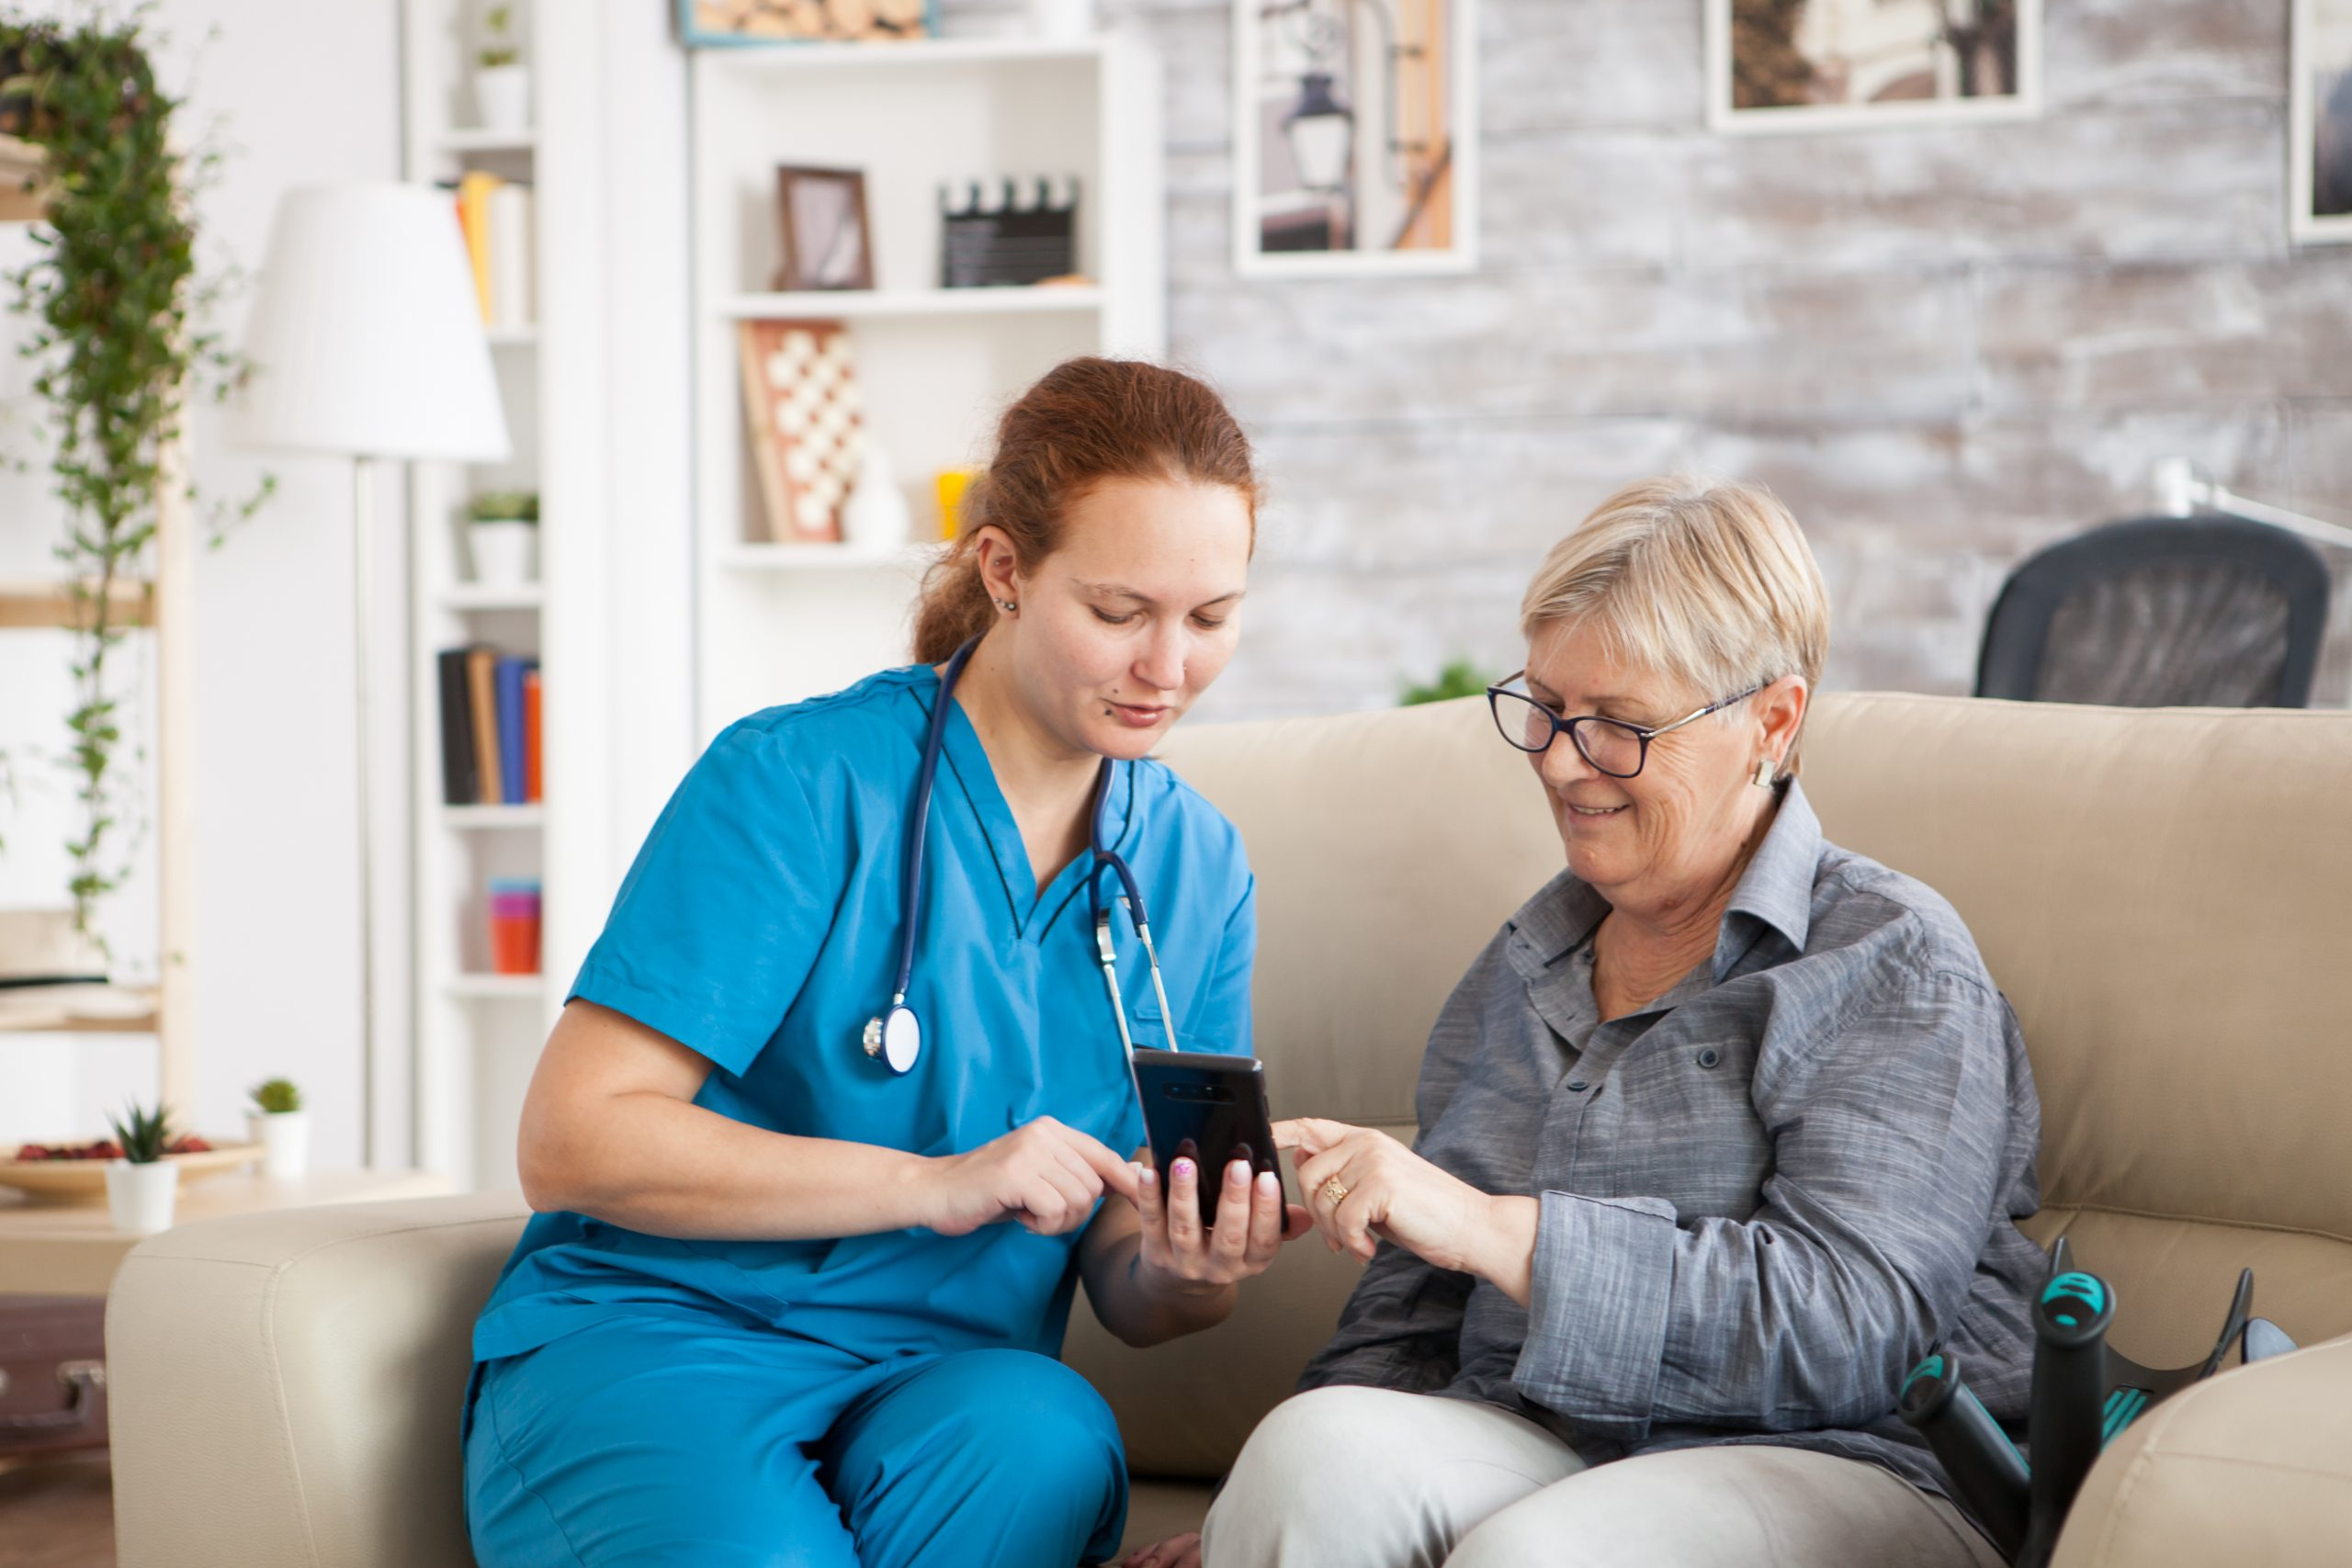 Electronic Visit Verification for Home Health